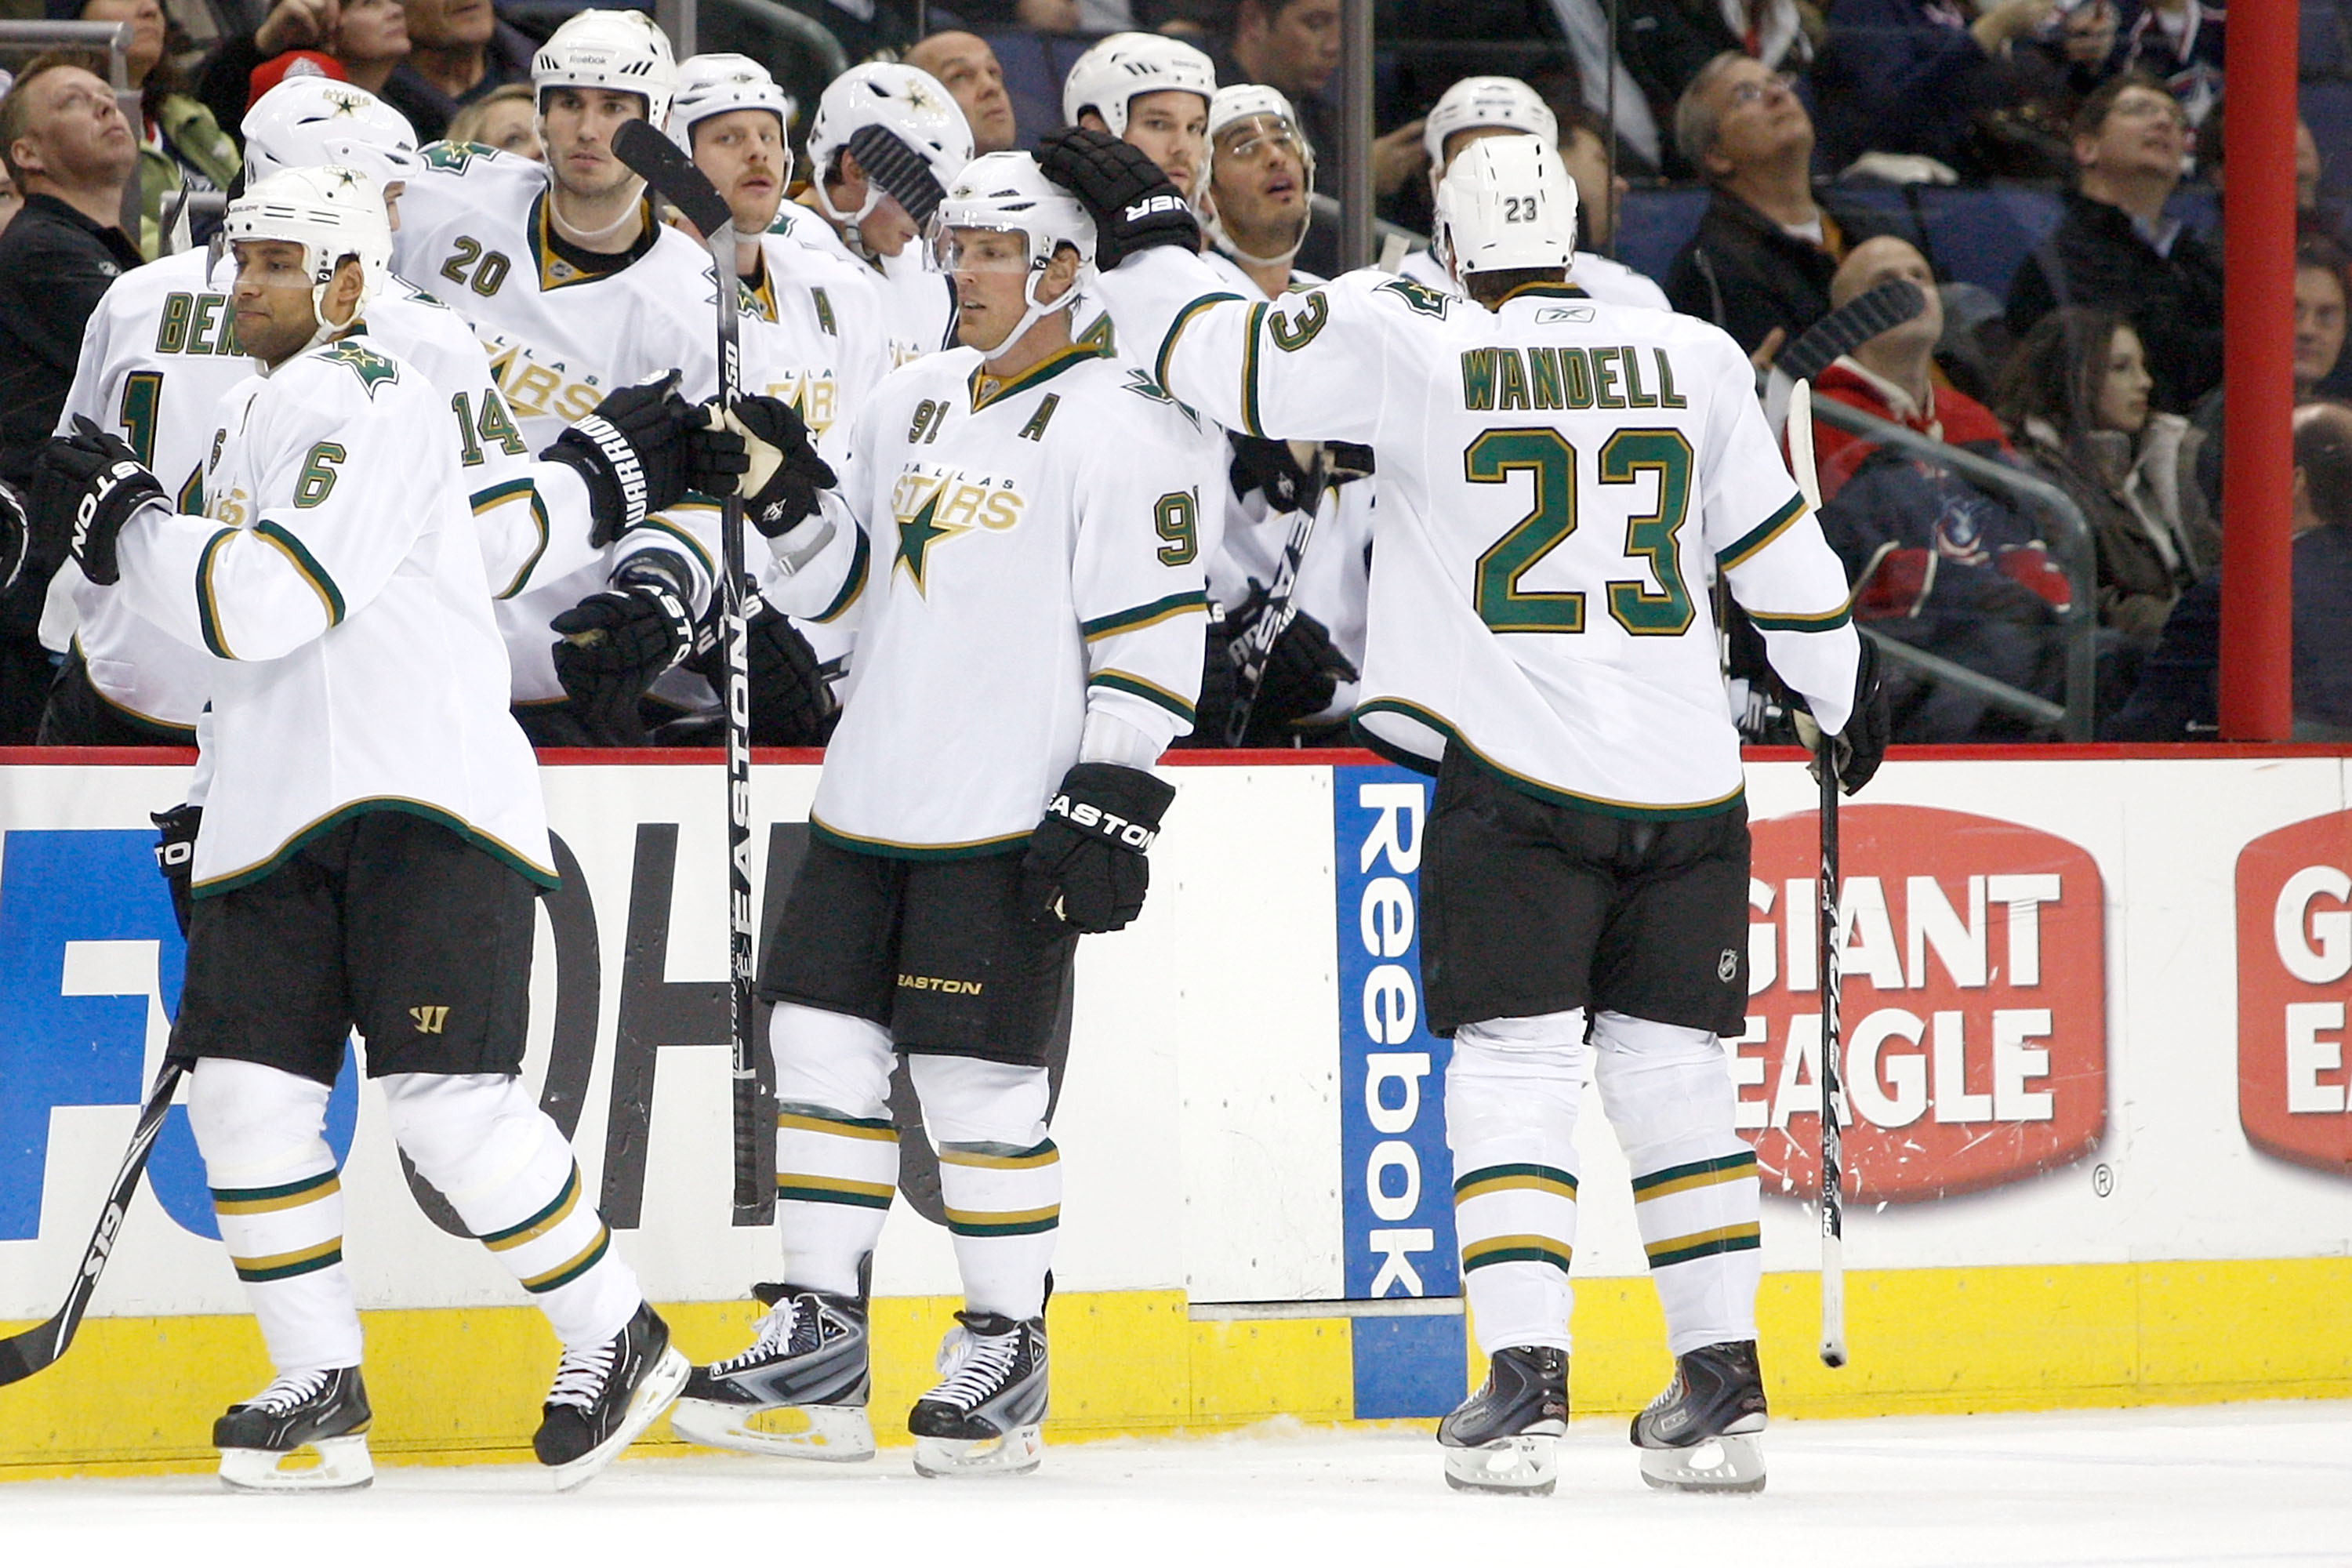 COLUMBUS, OH - DECEMBER 6:  Brad Richards #91 of the Dallas Stars is congratulated by Tom Wandell #23 of the Dallas Stars after scoring to tie the game against the Columbus Blue Jackets on December 6, 2010 at Nationwide Arena in Columbus, Ohio.  (Photo by